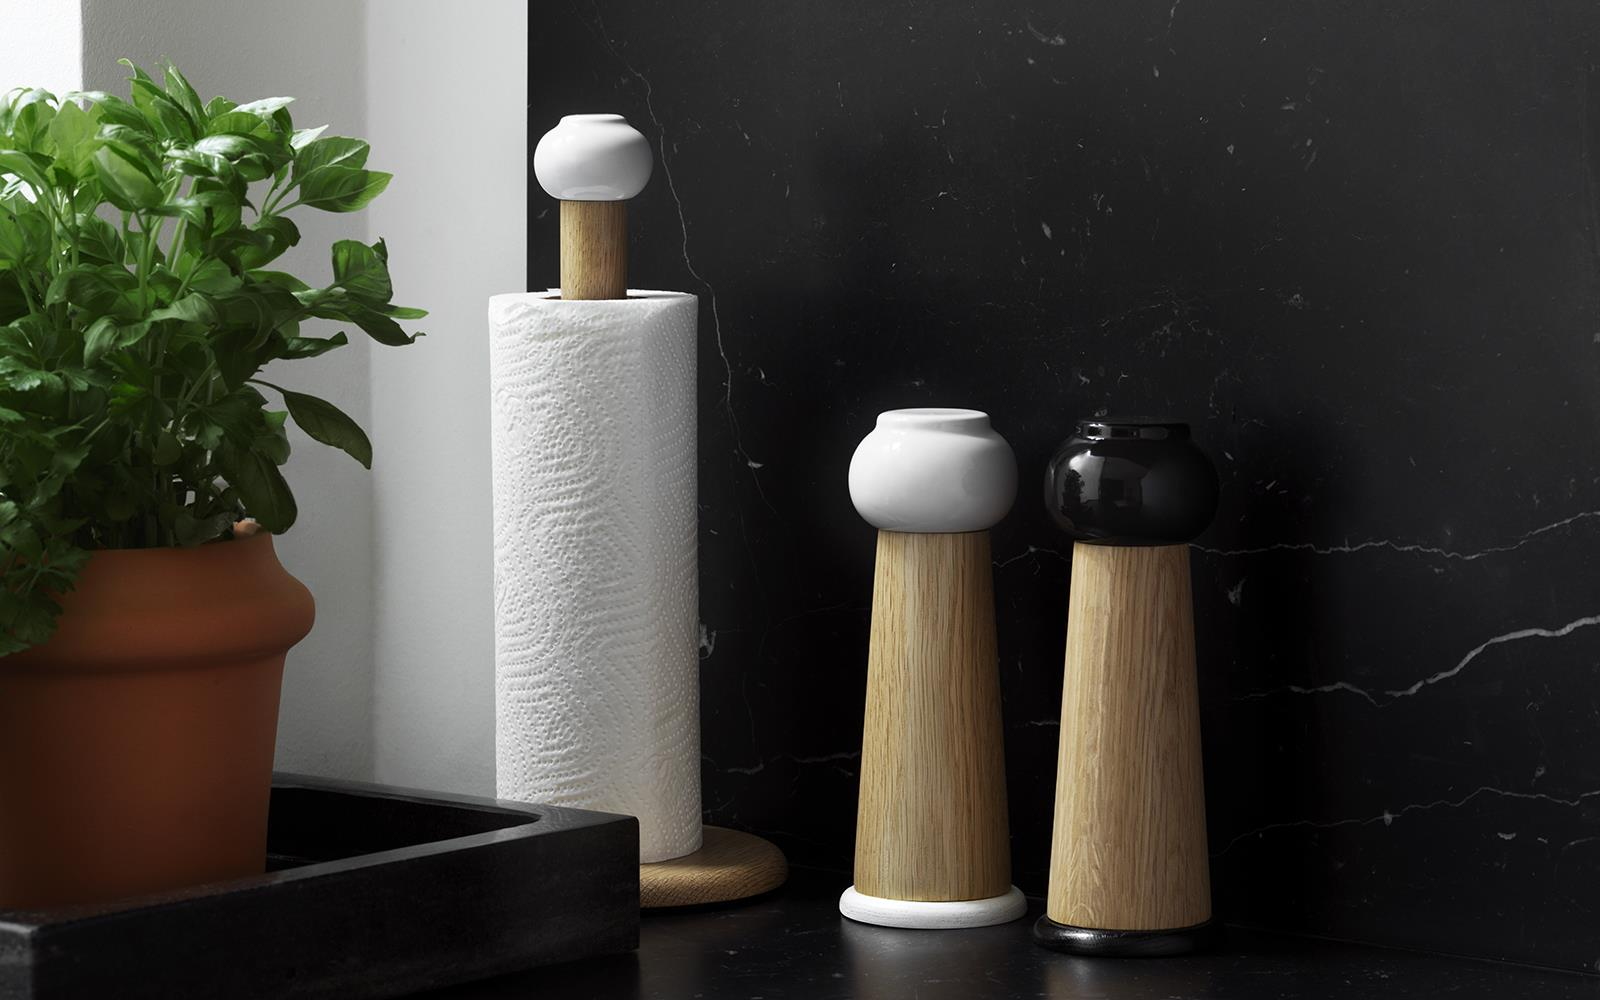 Barrel Paper Towel Holder2